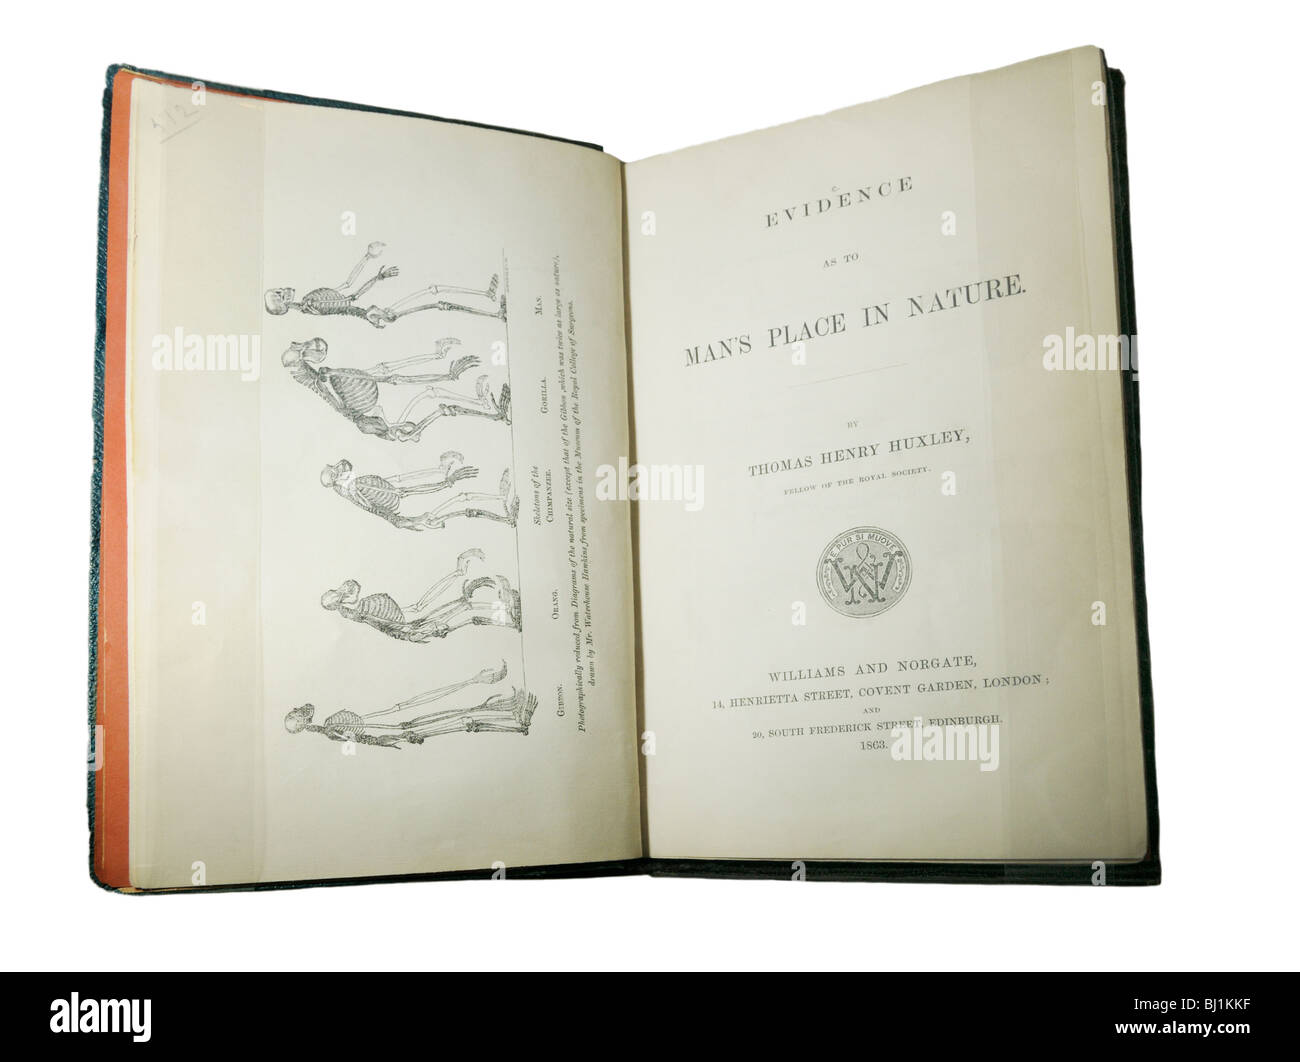 Evidence as to Man's Place in Nature, a book on evolutionary theory by T.H. Huxley from 1863 - Stock Image